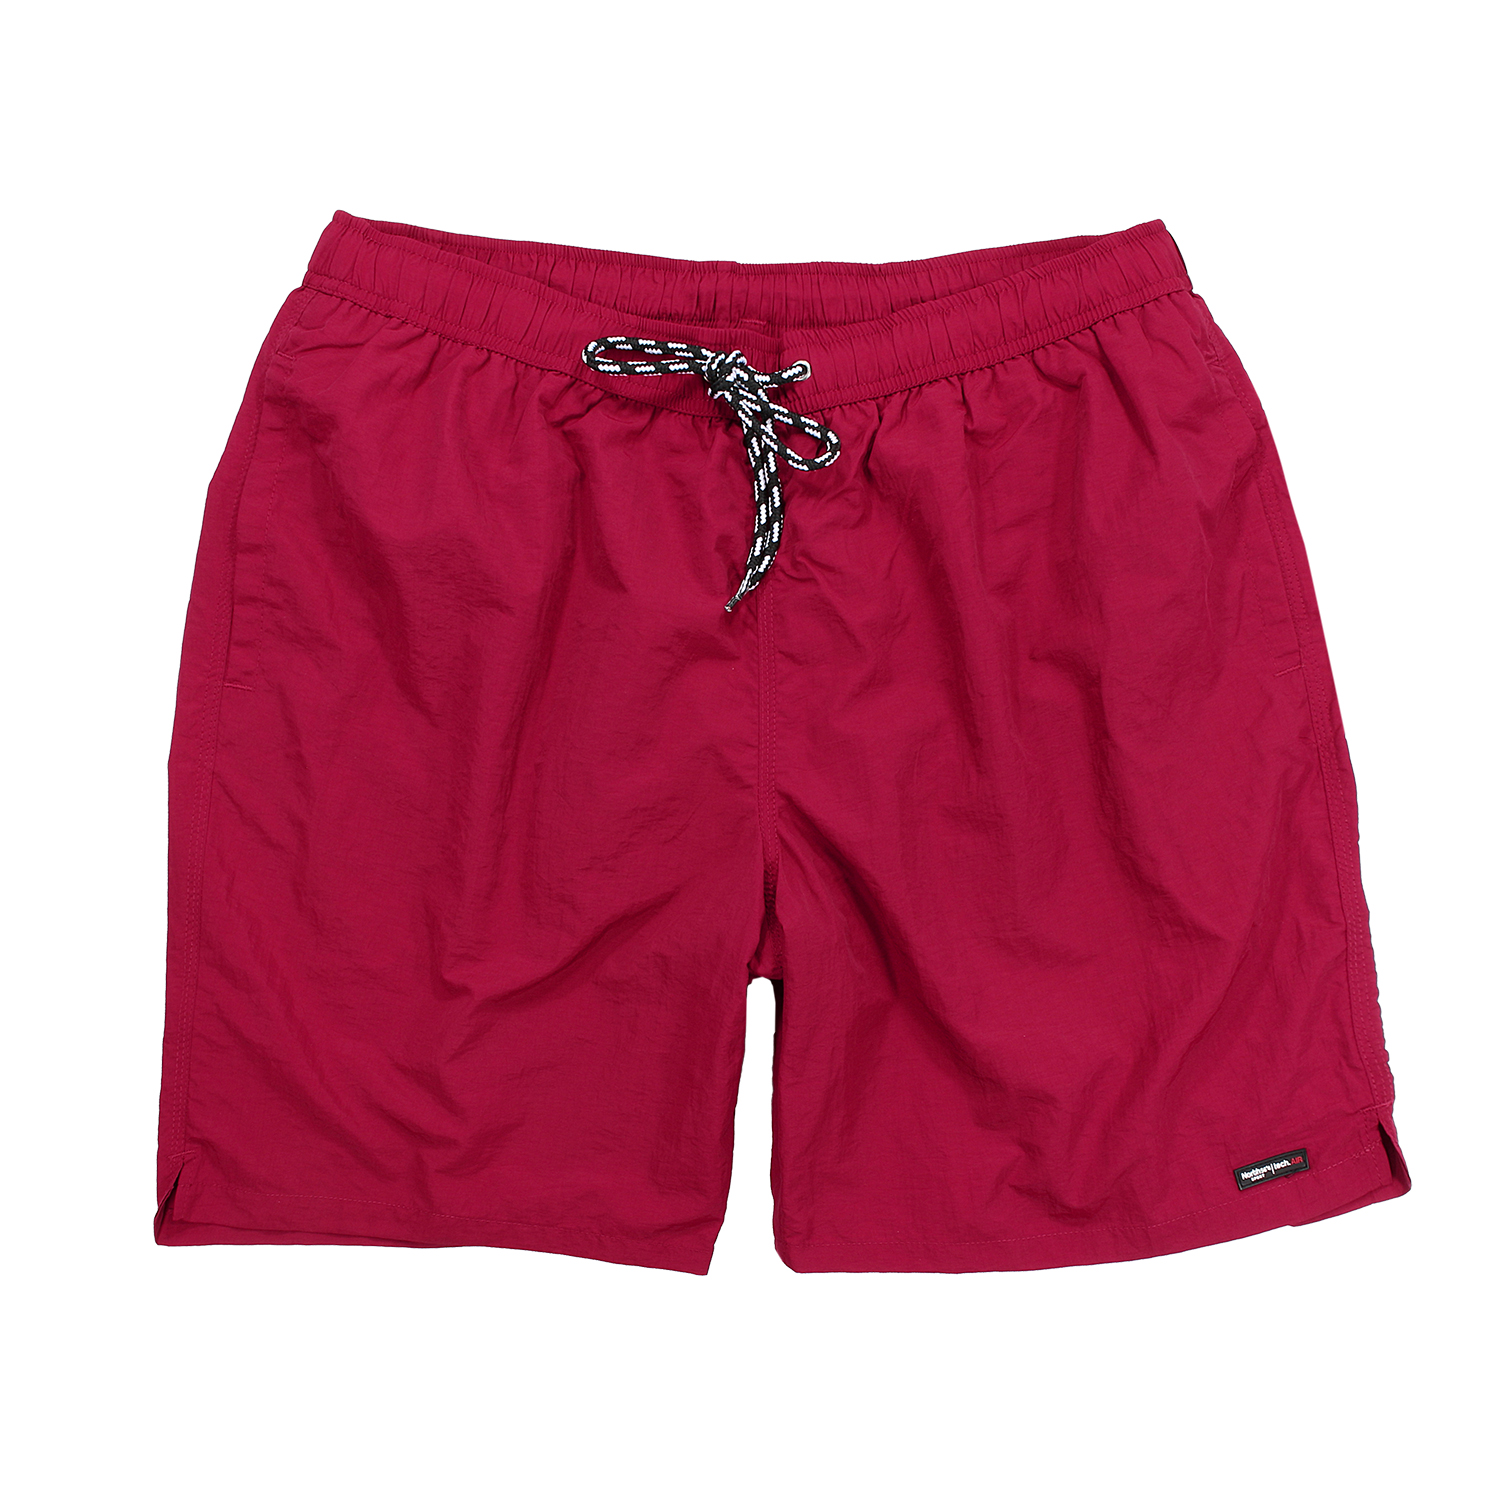 Detail Image to Red swimming trunks by Greyes in extra large sizes up to 8XL